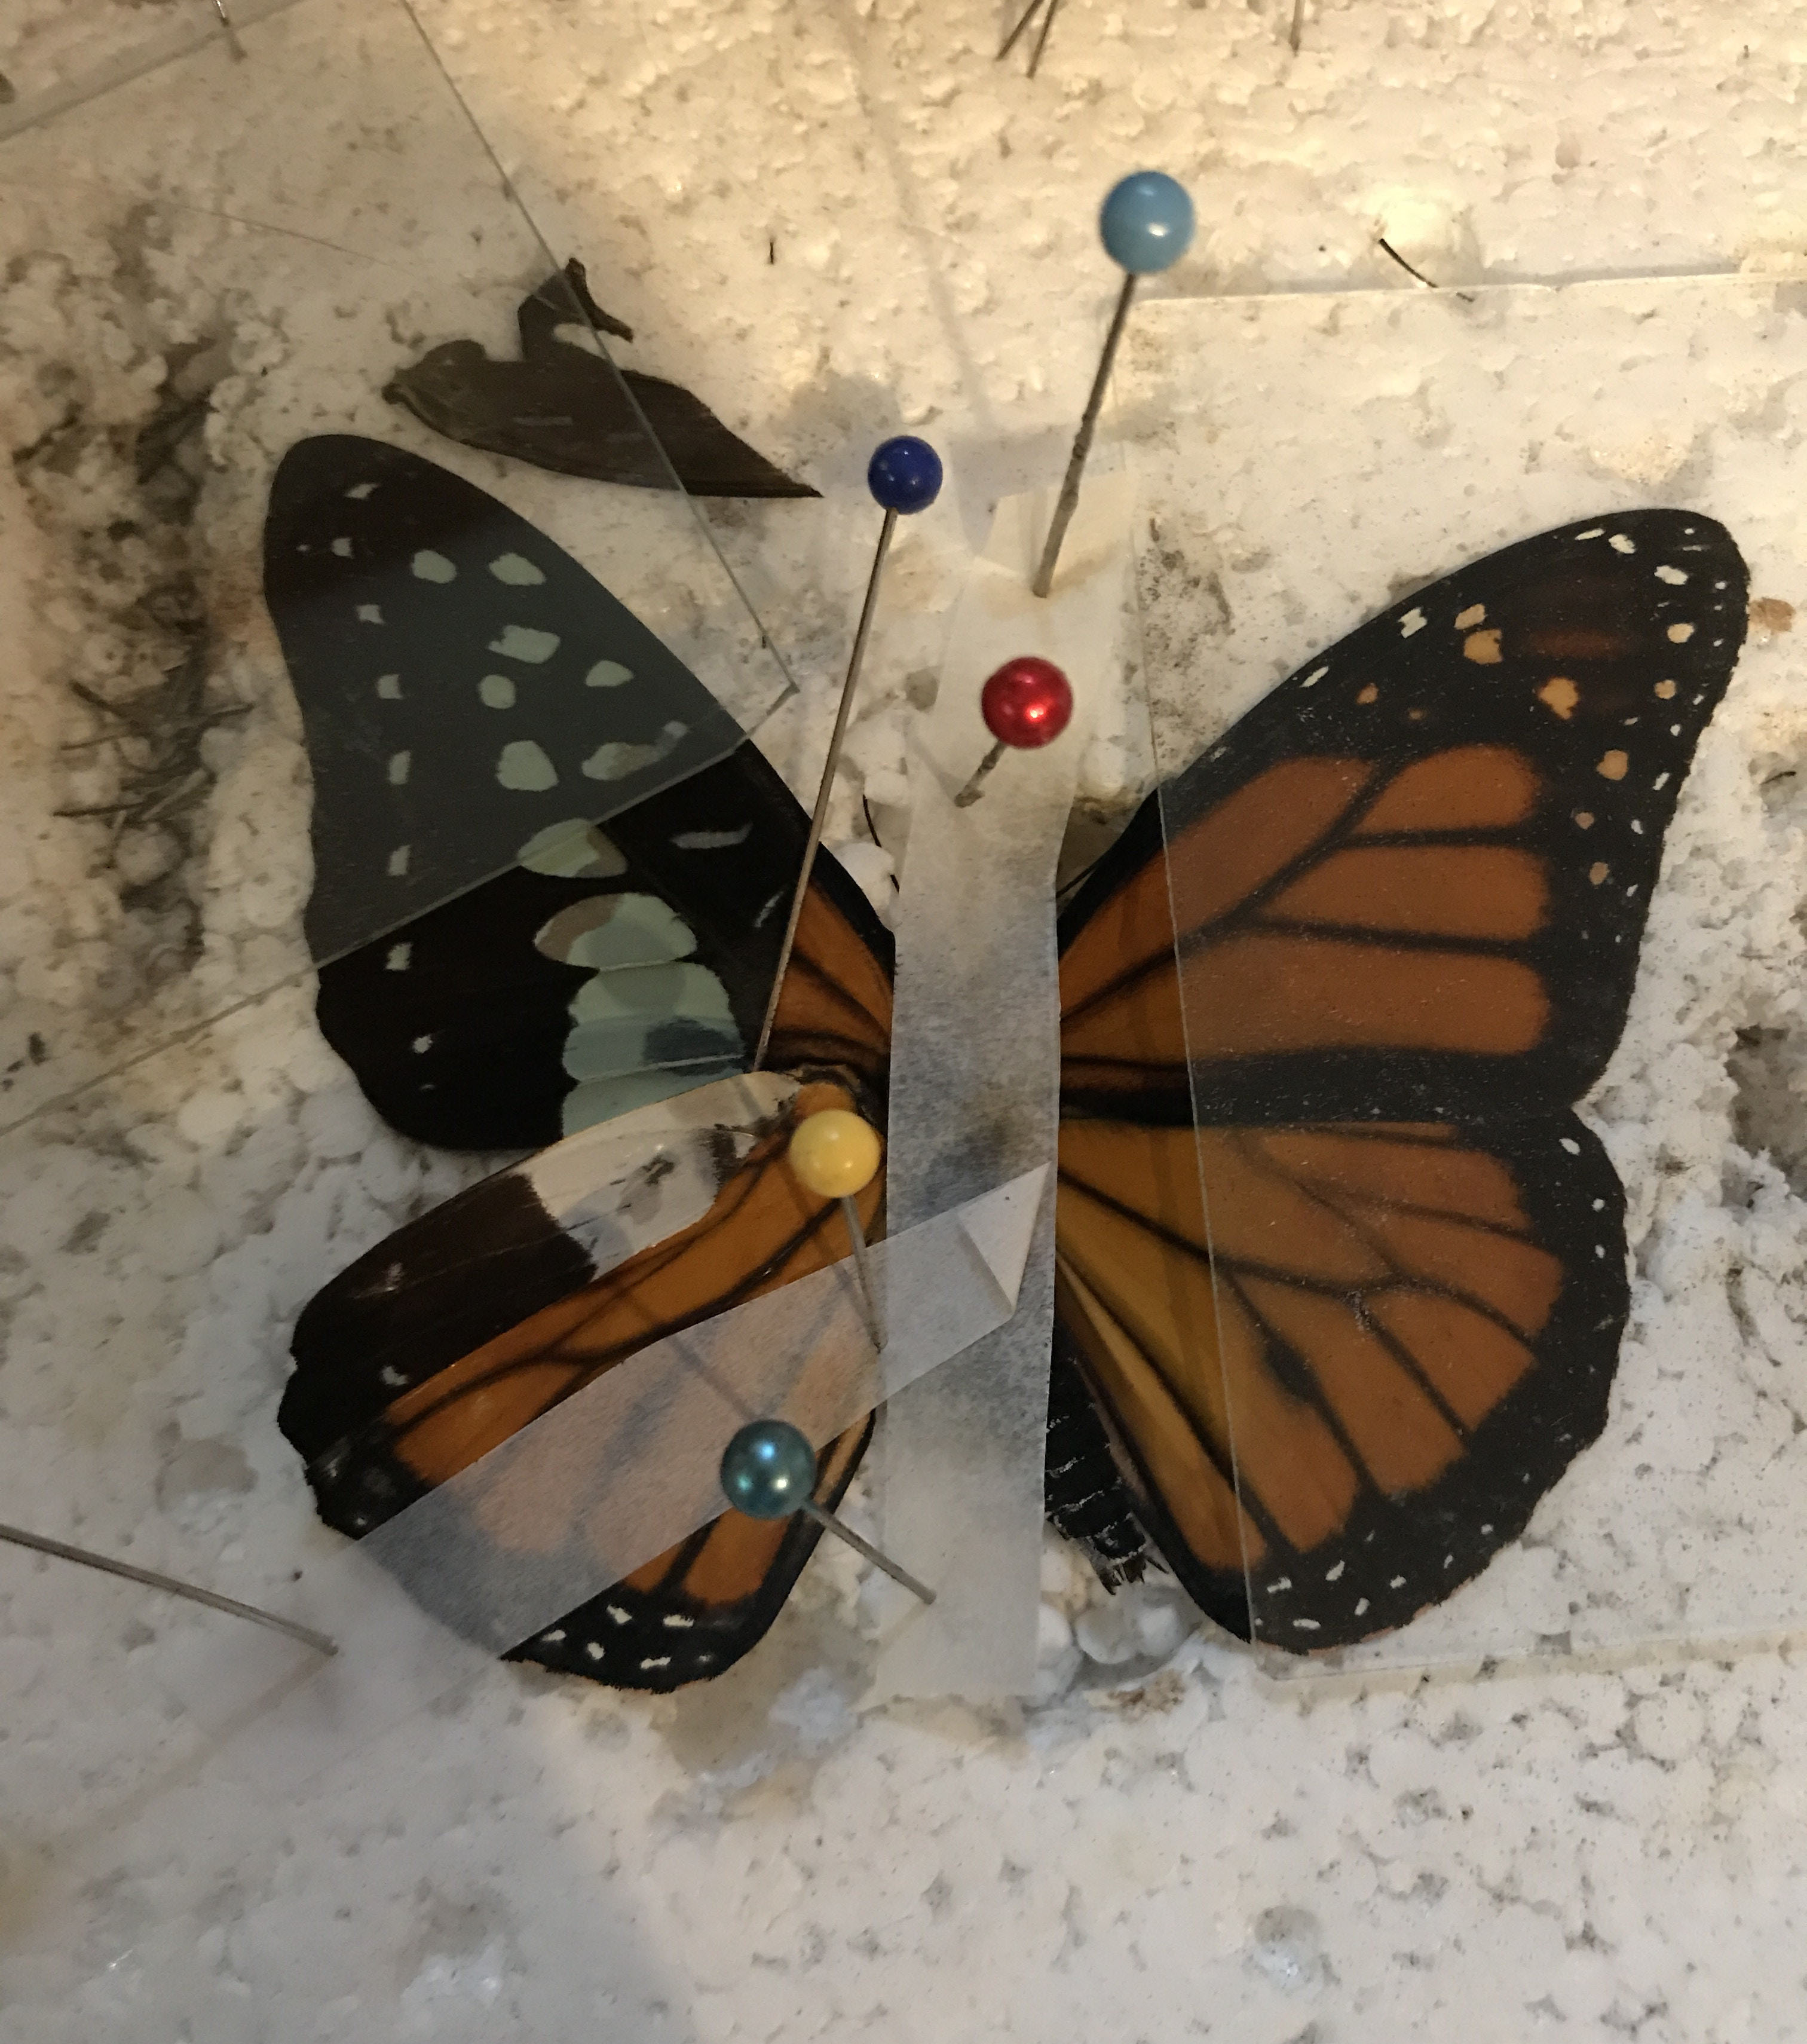 Monarch butterfly receives life-saving wing transplant at zoo, photos reveal